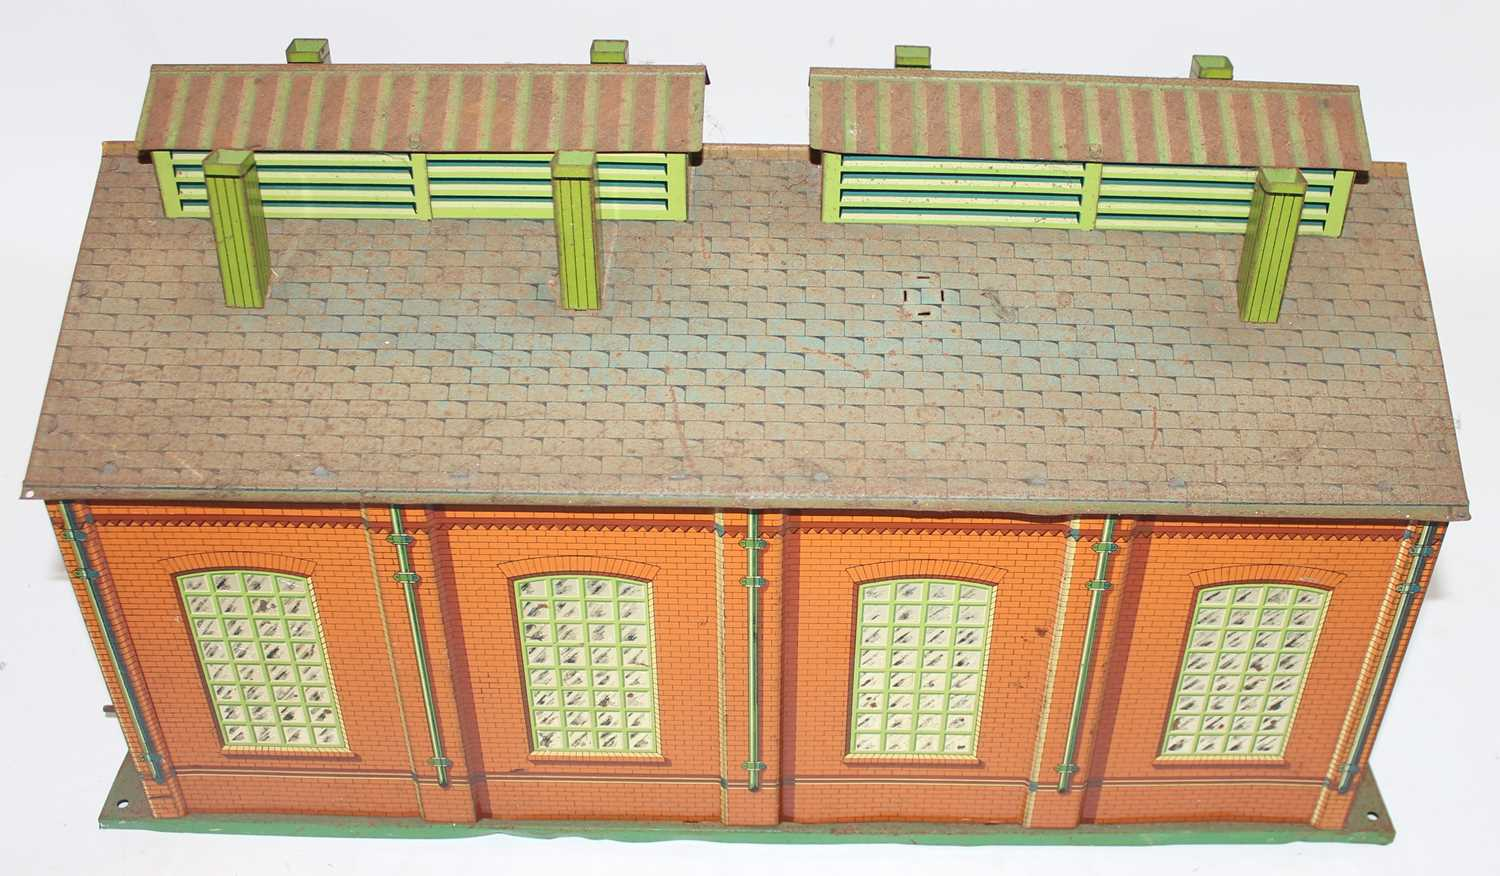 1935-41 Hornby E2E engine shed green base, yellow ridge tiles, inside of doors plain, missing one - Image 3 of 4